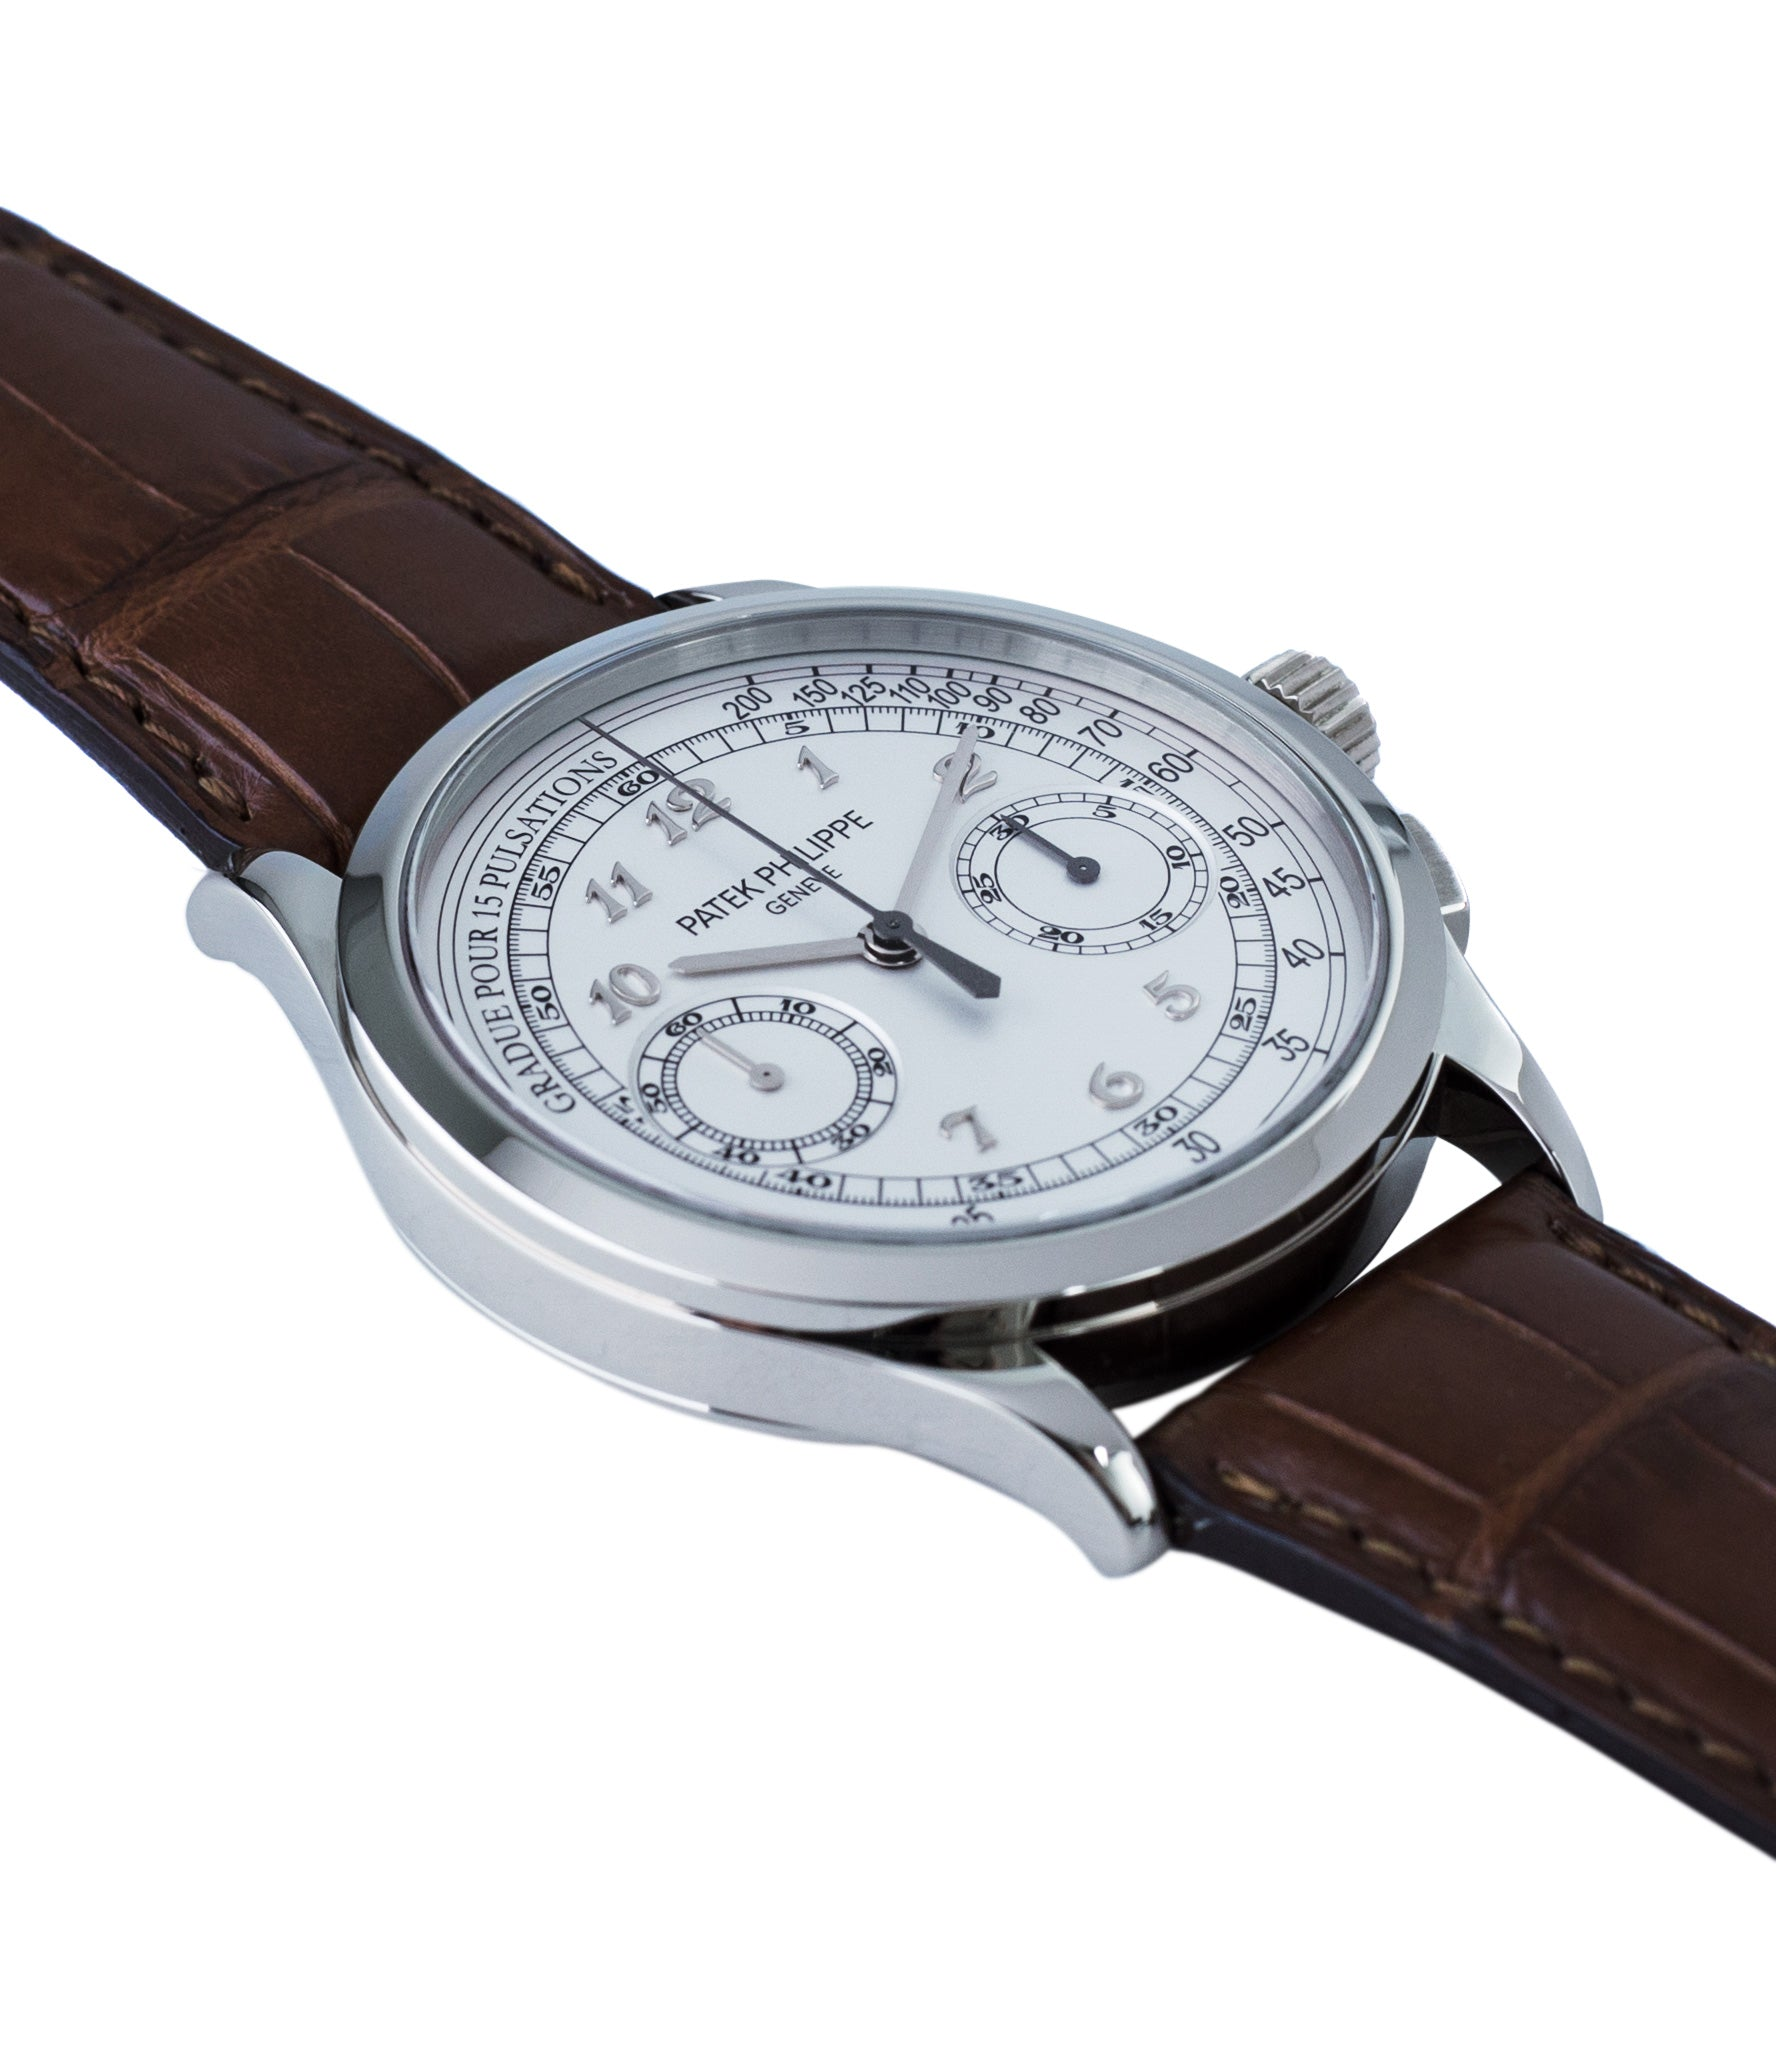 buy Patek Philippe 5170G-001 grey gold dress Chronograph Pulsation Scale preowned watch at A Collected Man London rare watch specialist in United Kingdom